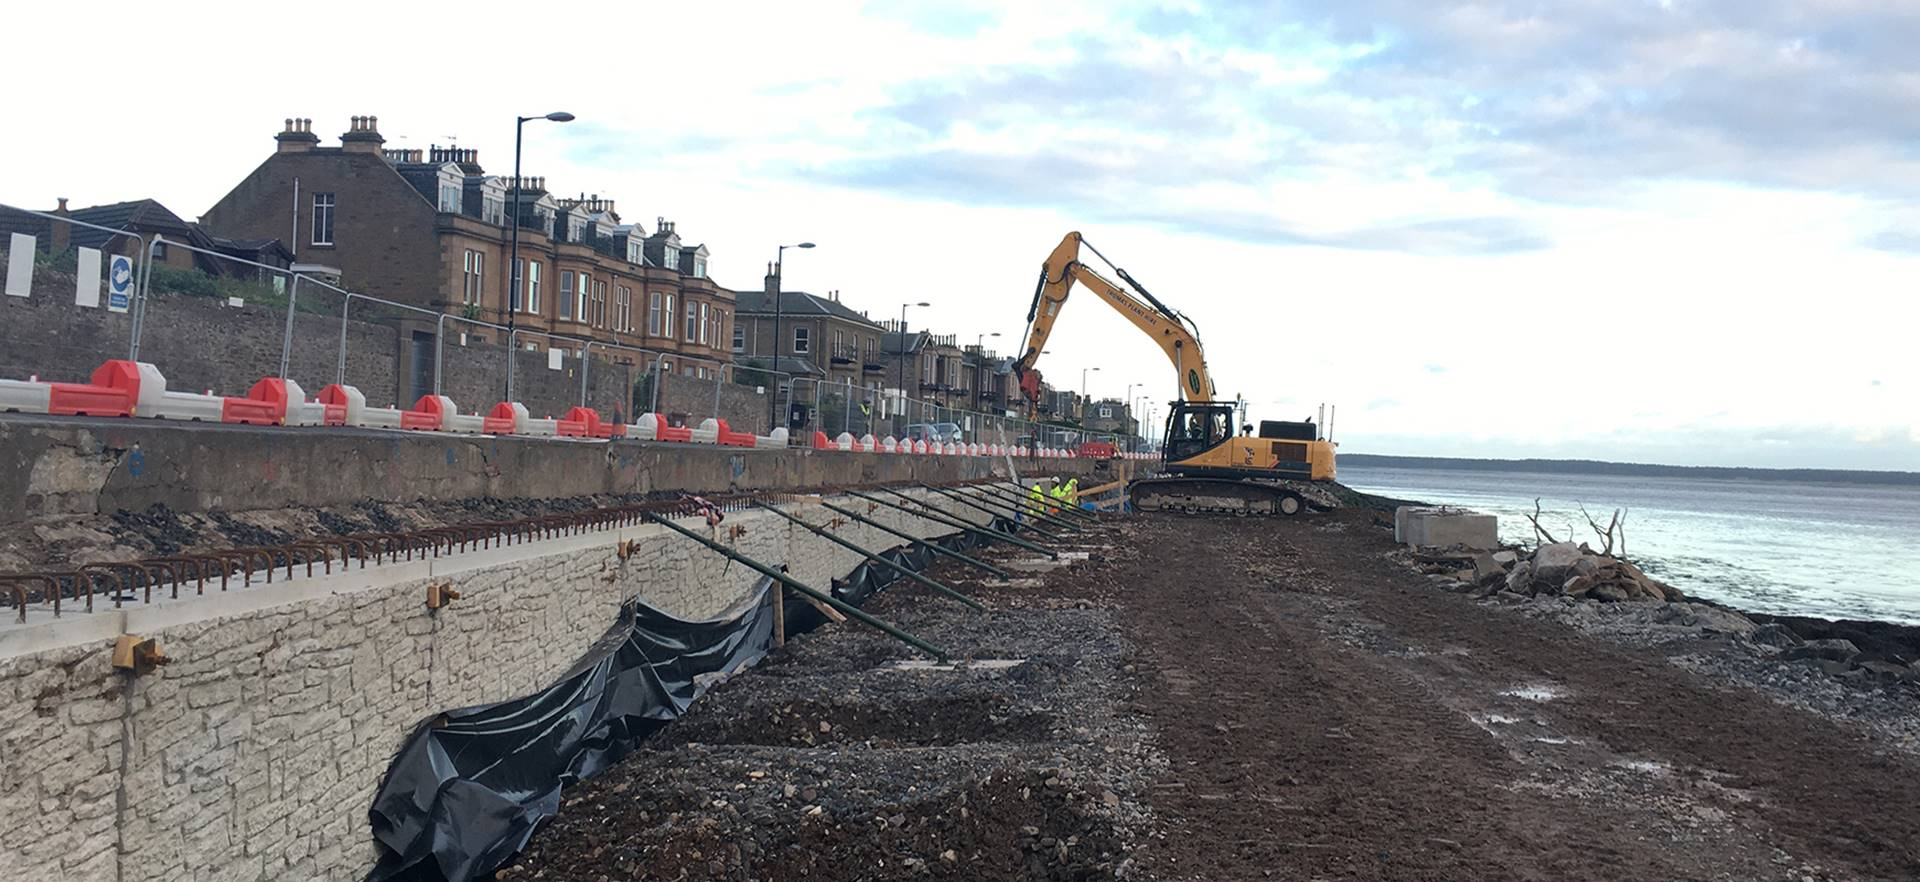 Broughty Ferry Flood Protection Scheme, Dundee